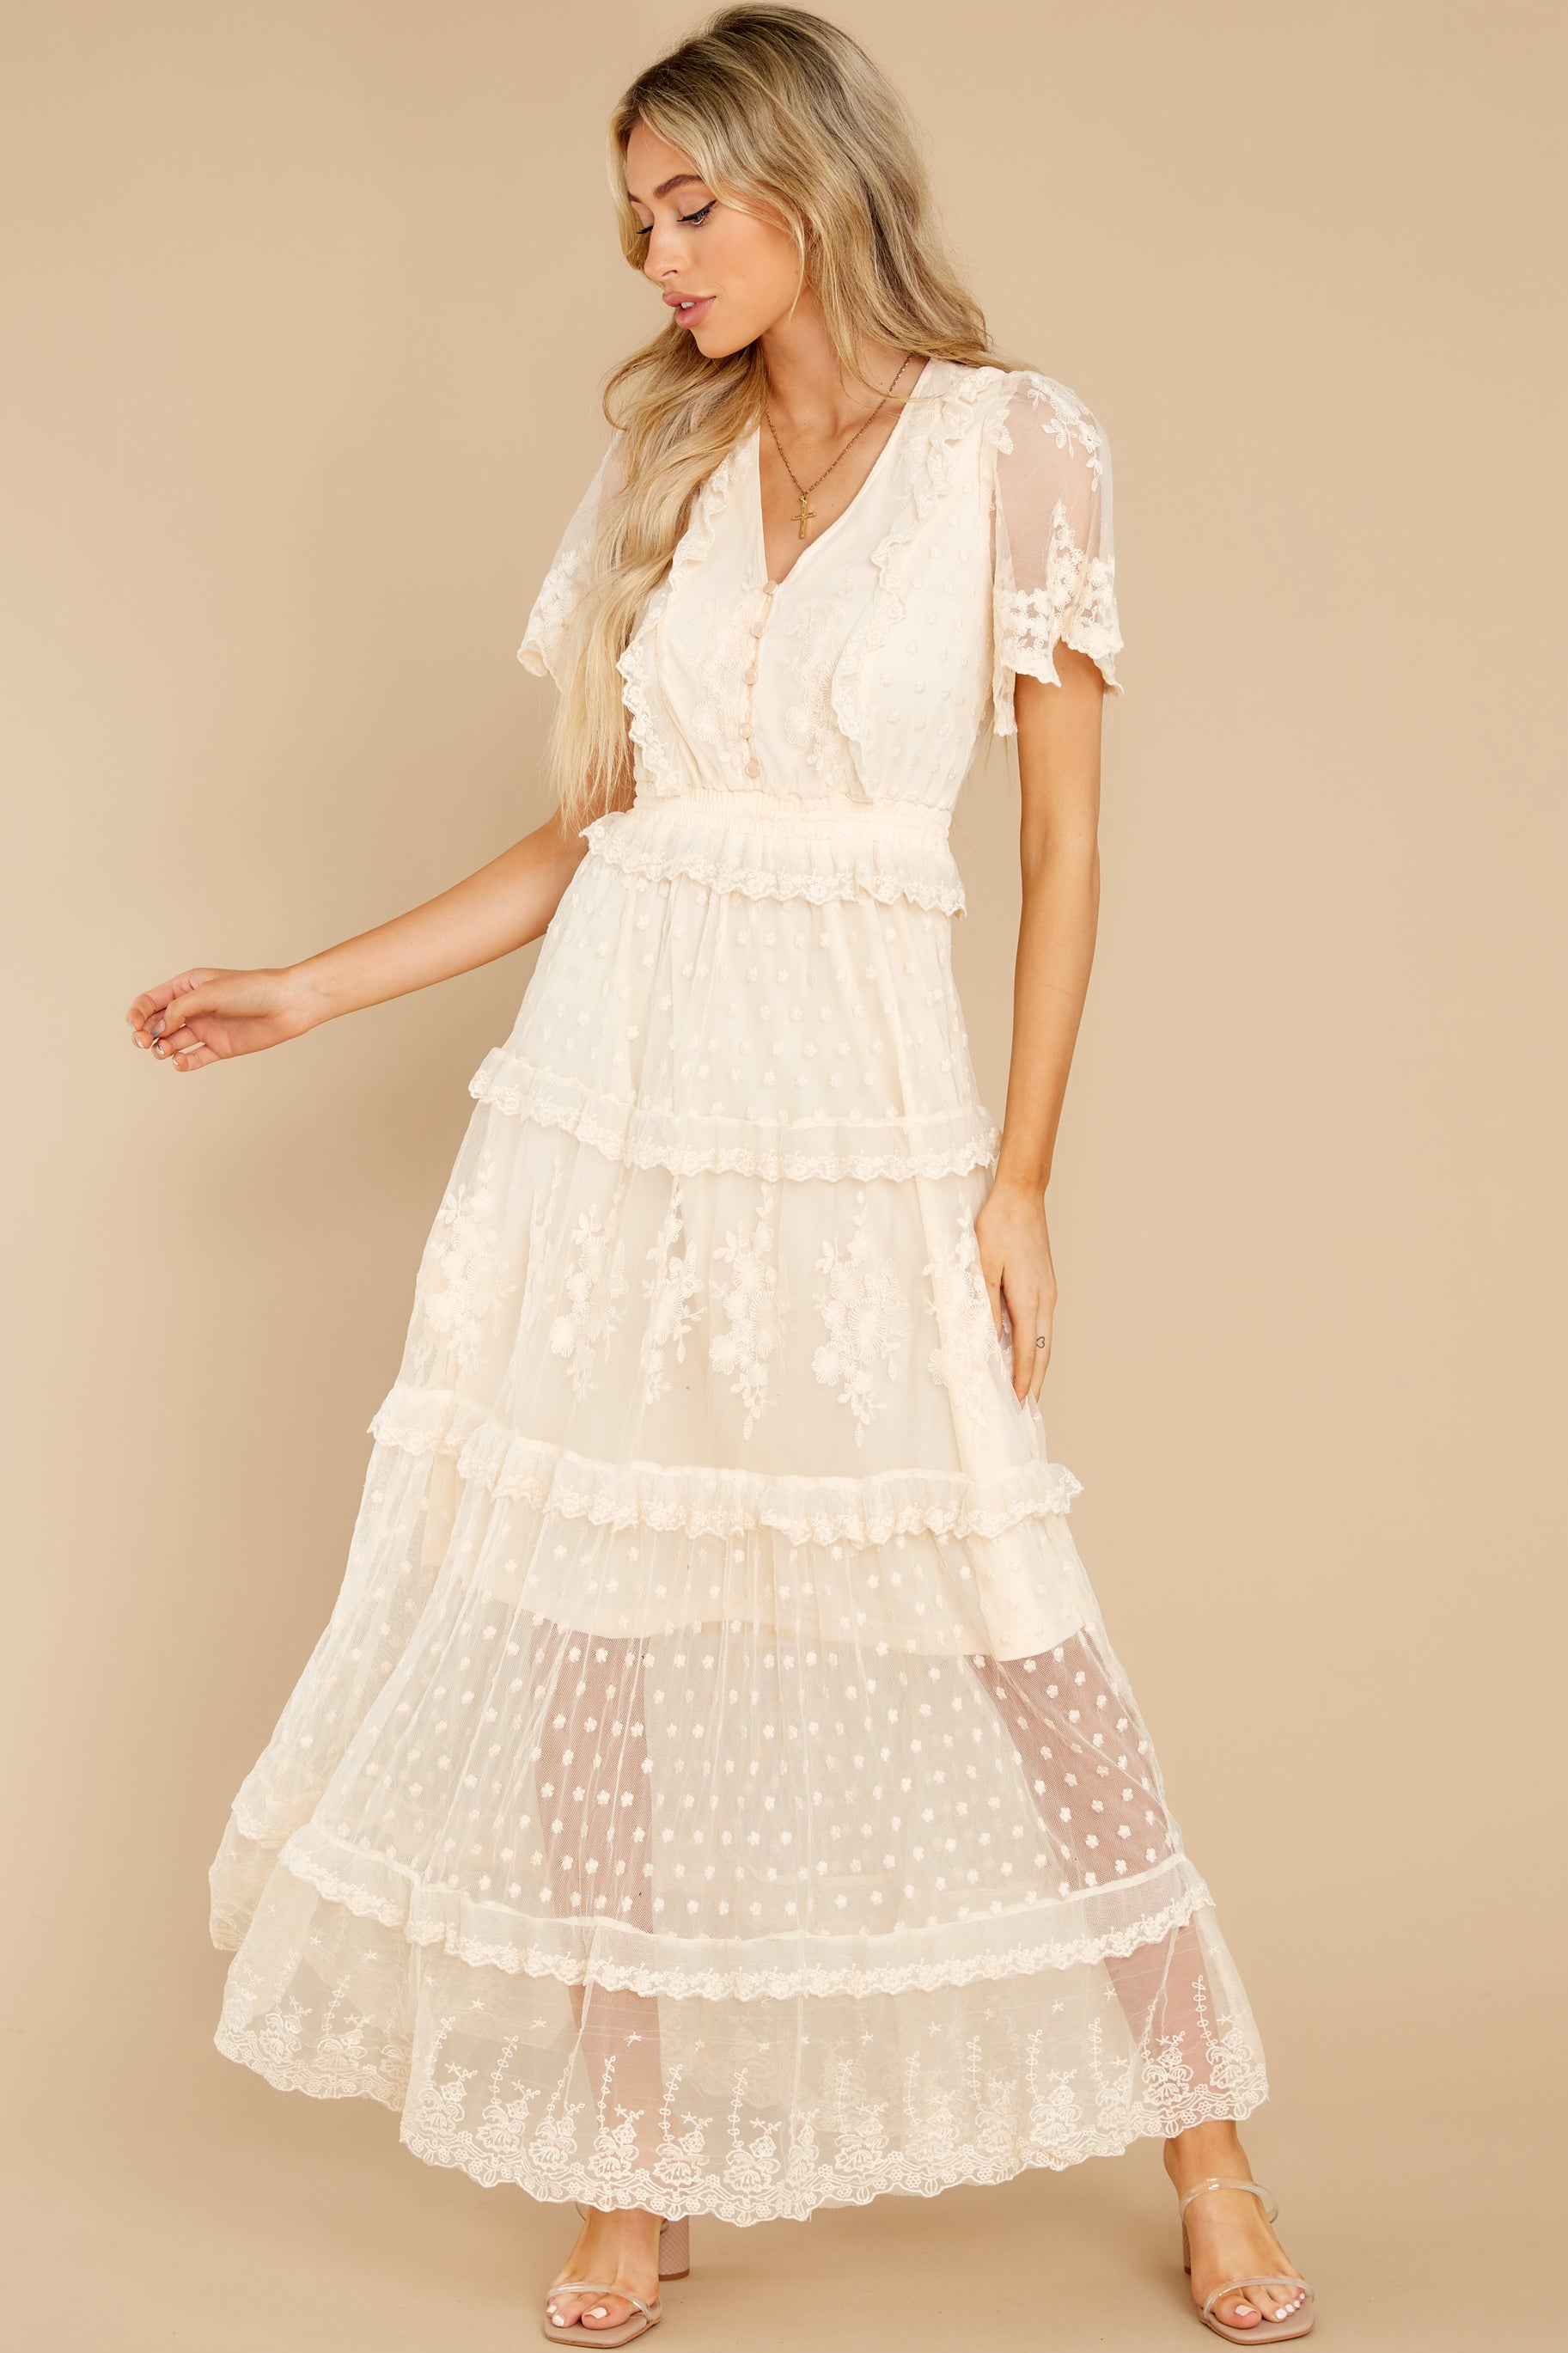 Cottagecore Dresses Aesthetic, Granny, Vintage Timeless And True Cream Maxi Dress White $52.00 AT vintagedancer.com